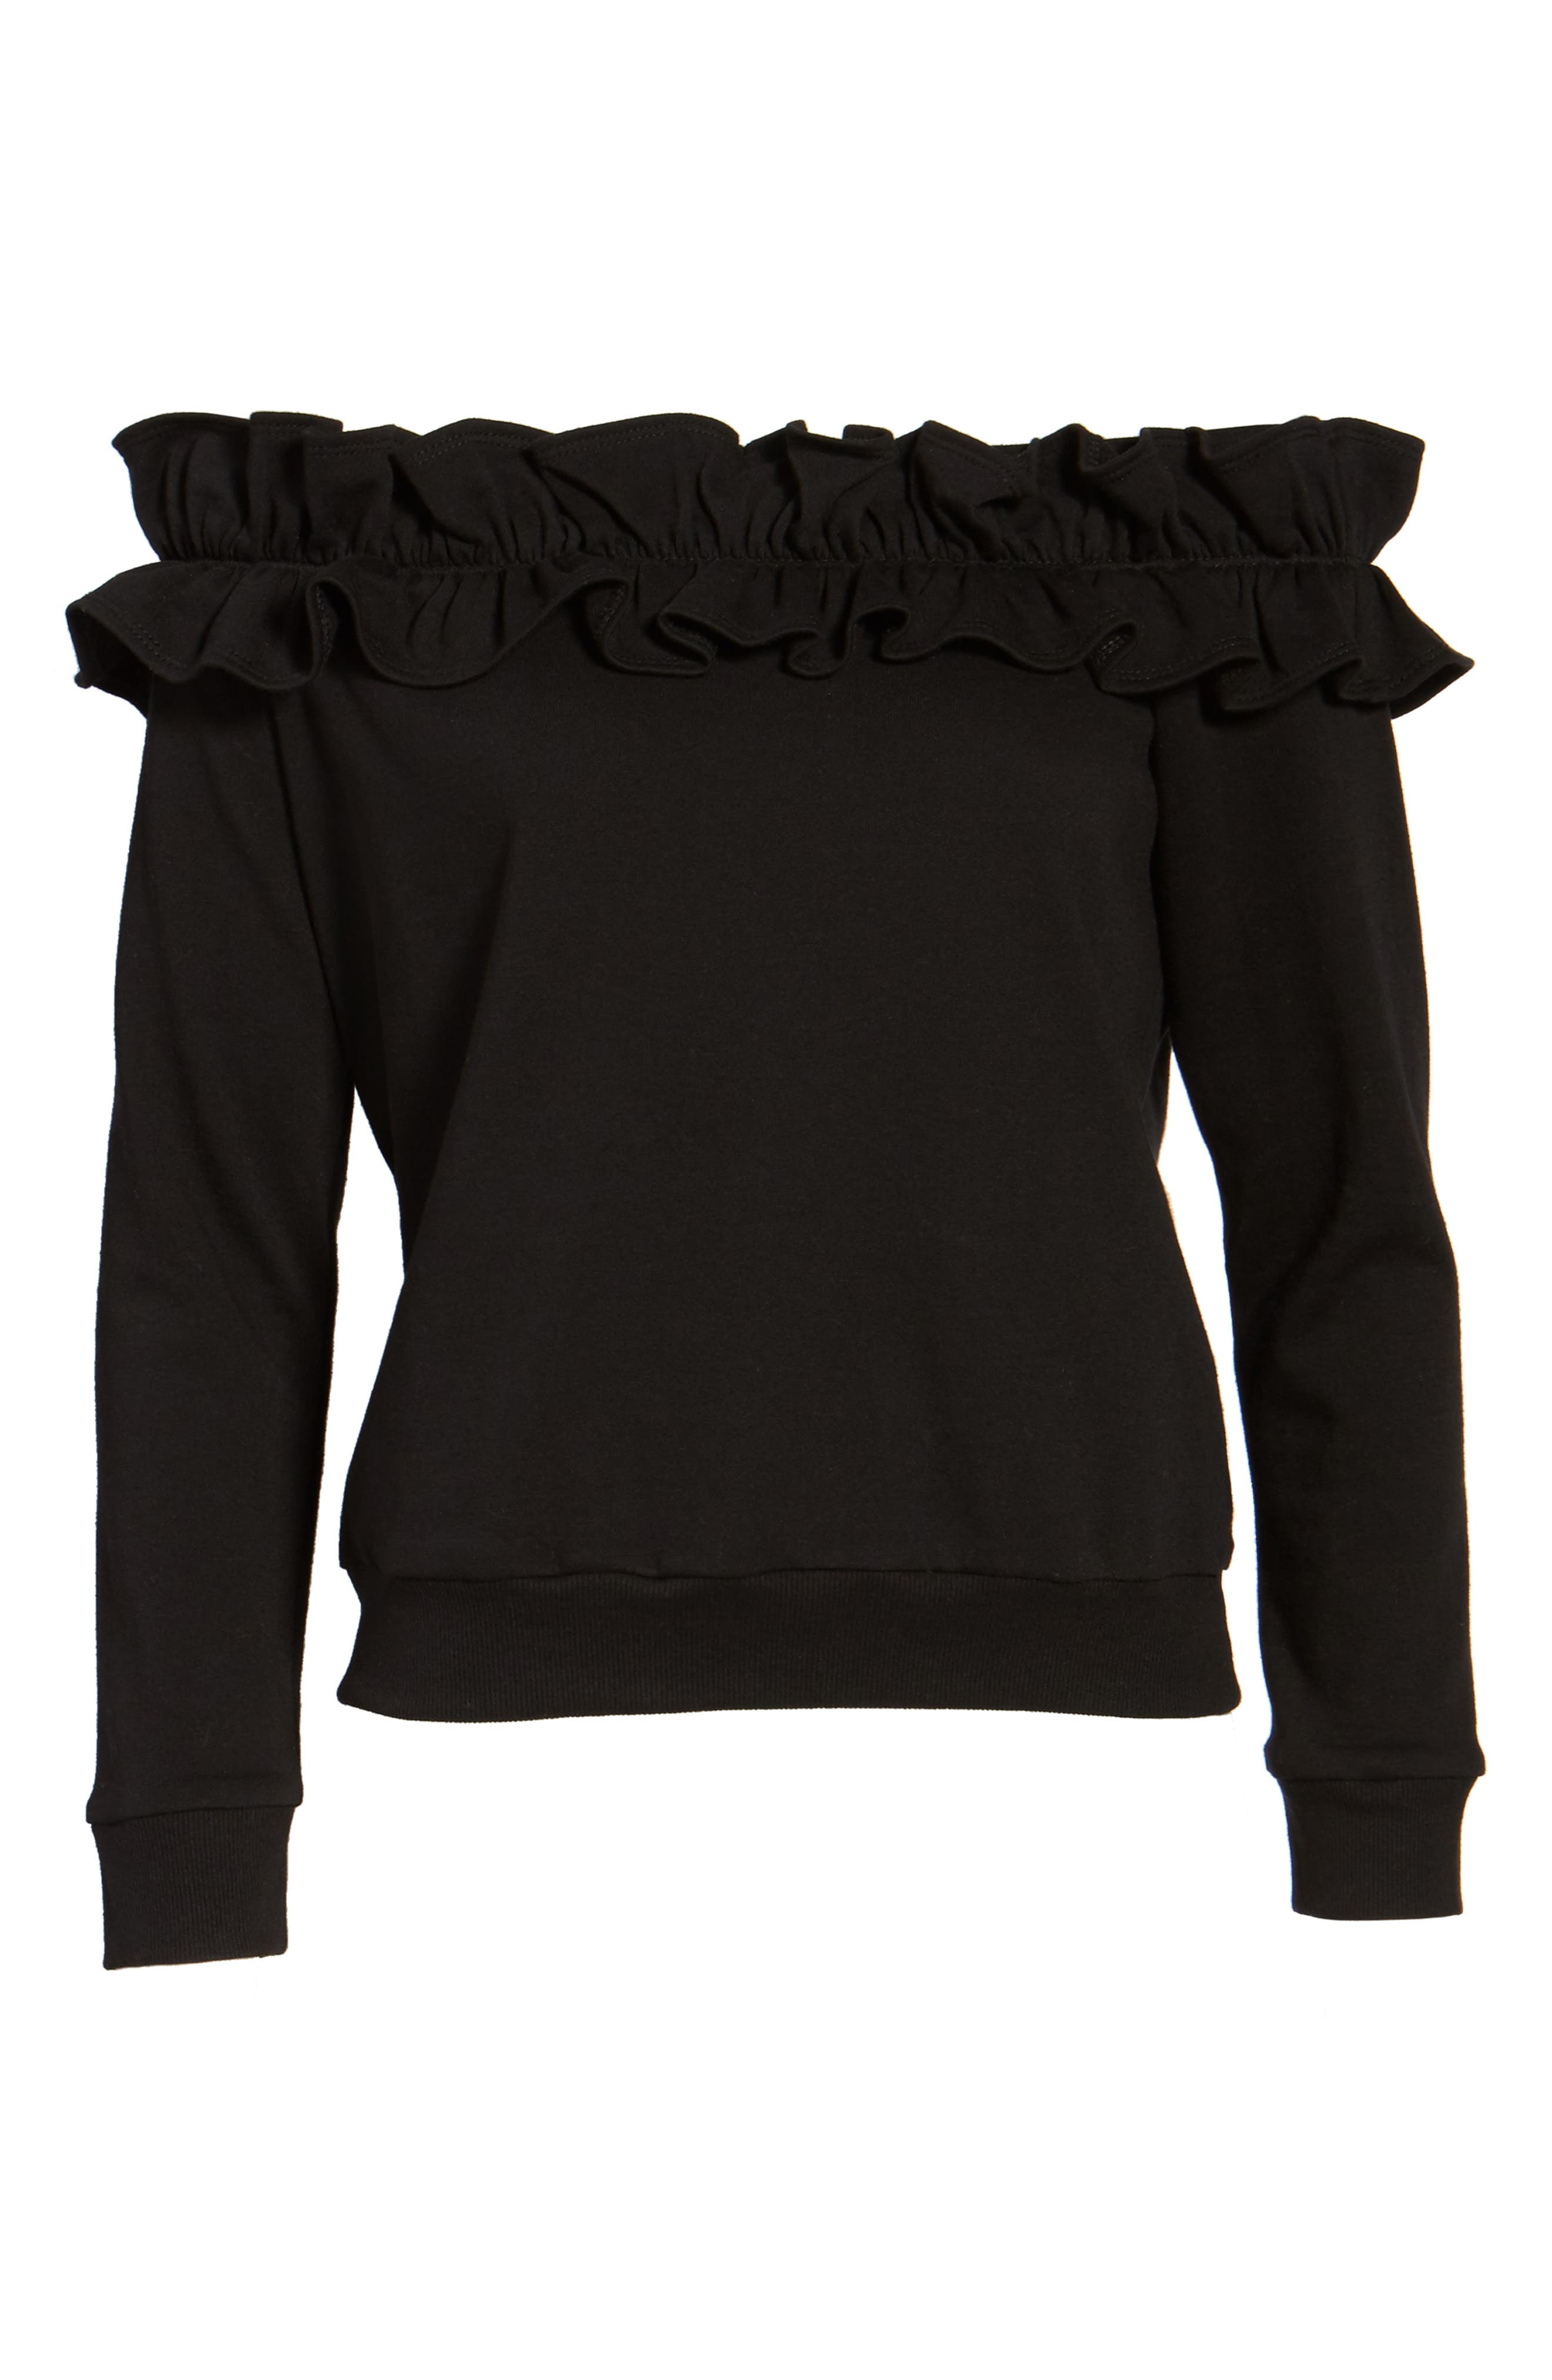 Main Image - Socialite Ruffle Off the Shoulder Top